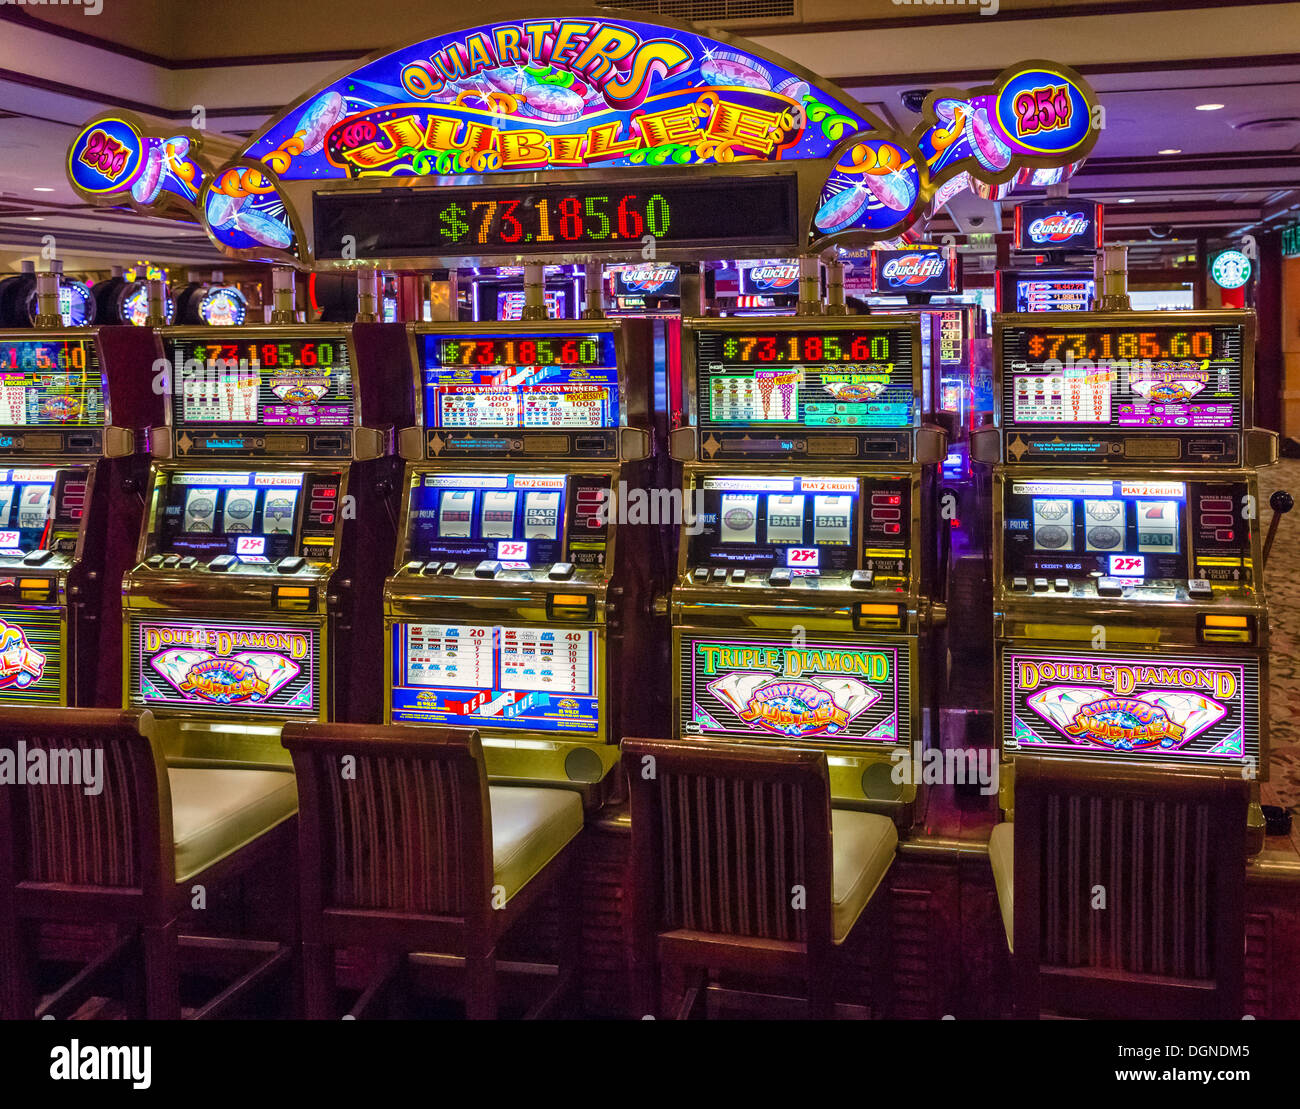 Las Vegas Slot Machines: Slot Machines In The Golden Nugget Casino, Fremont Street